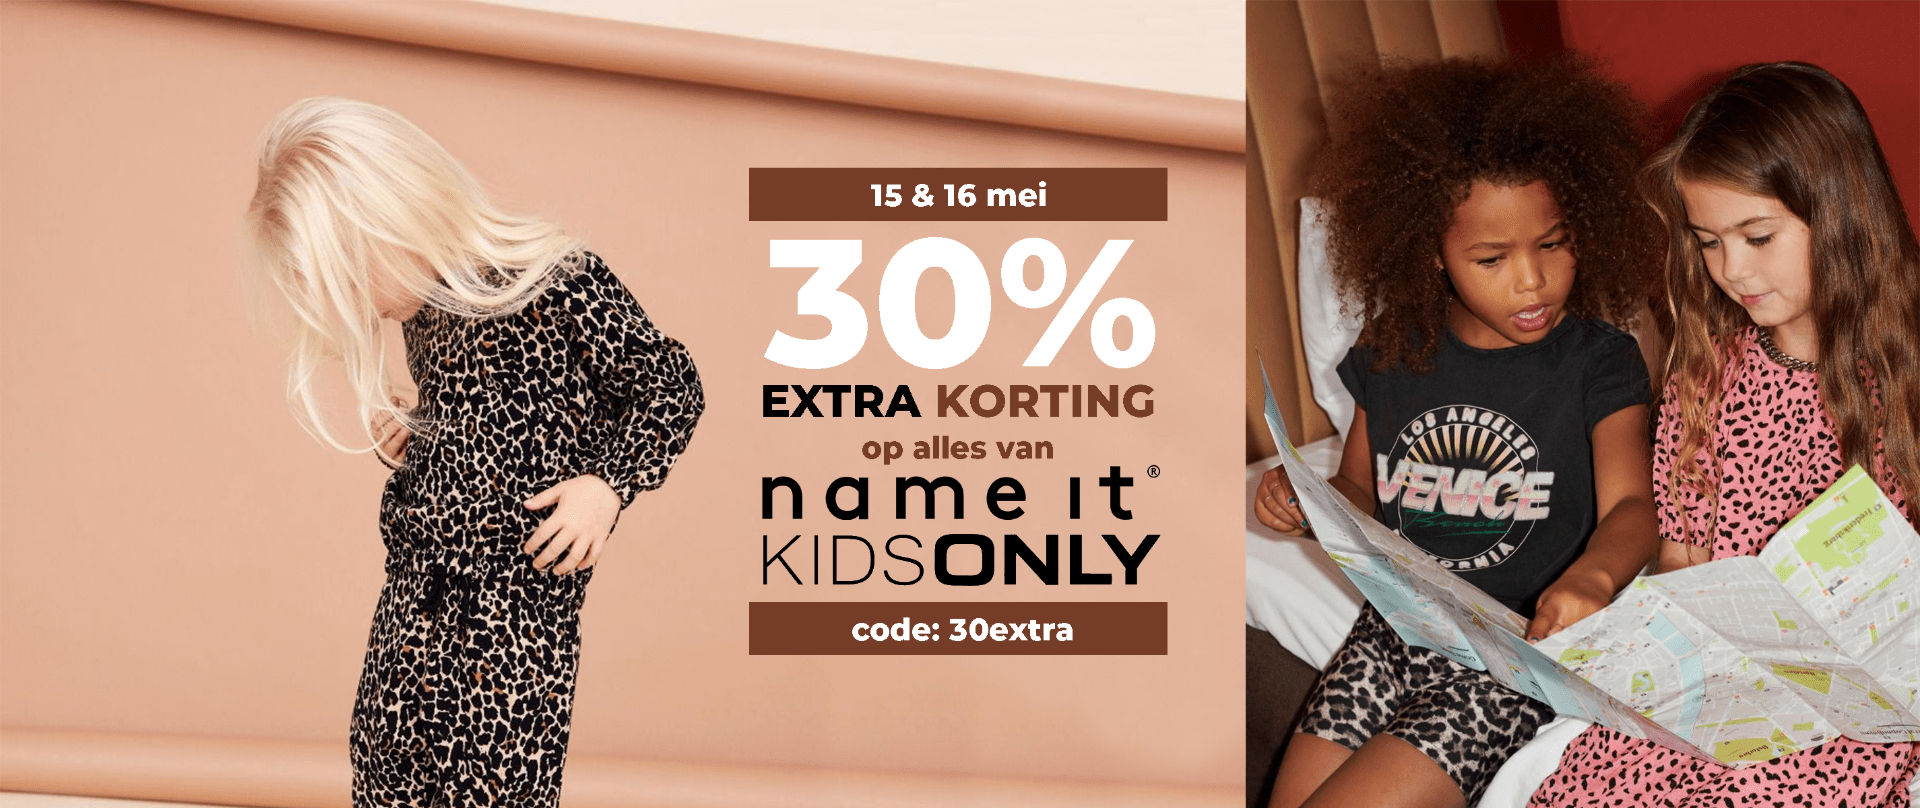 30% EXTRA KORTING OP NAME IT & ONLY